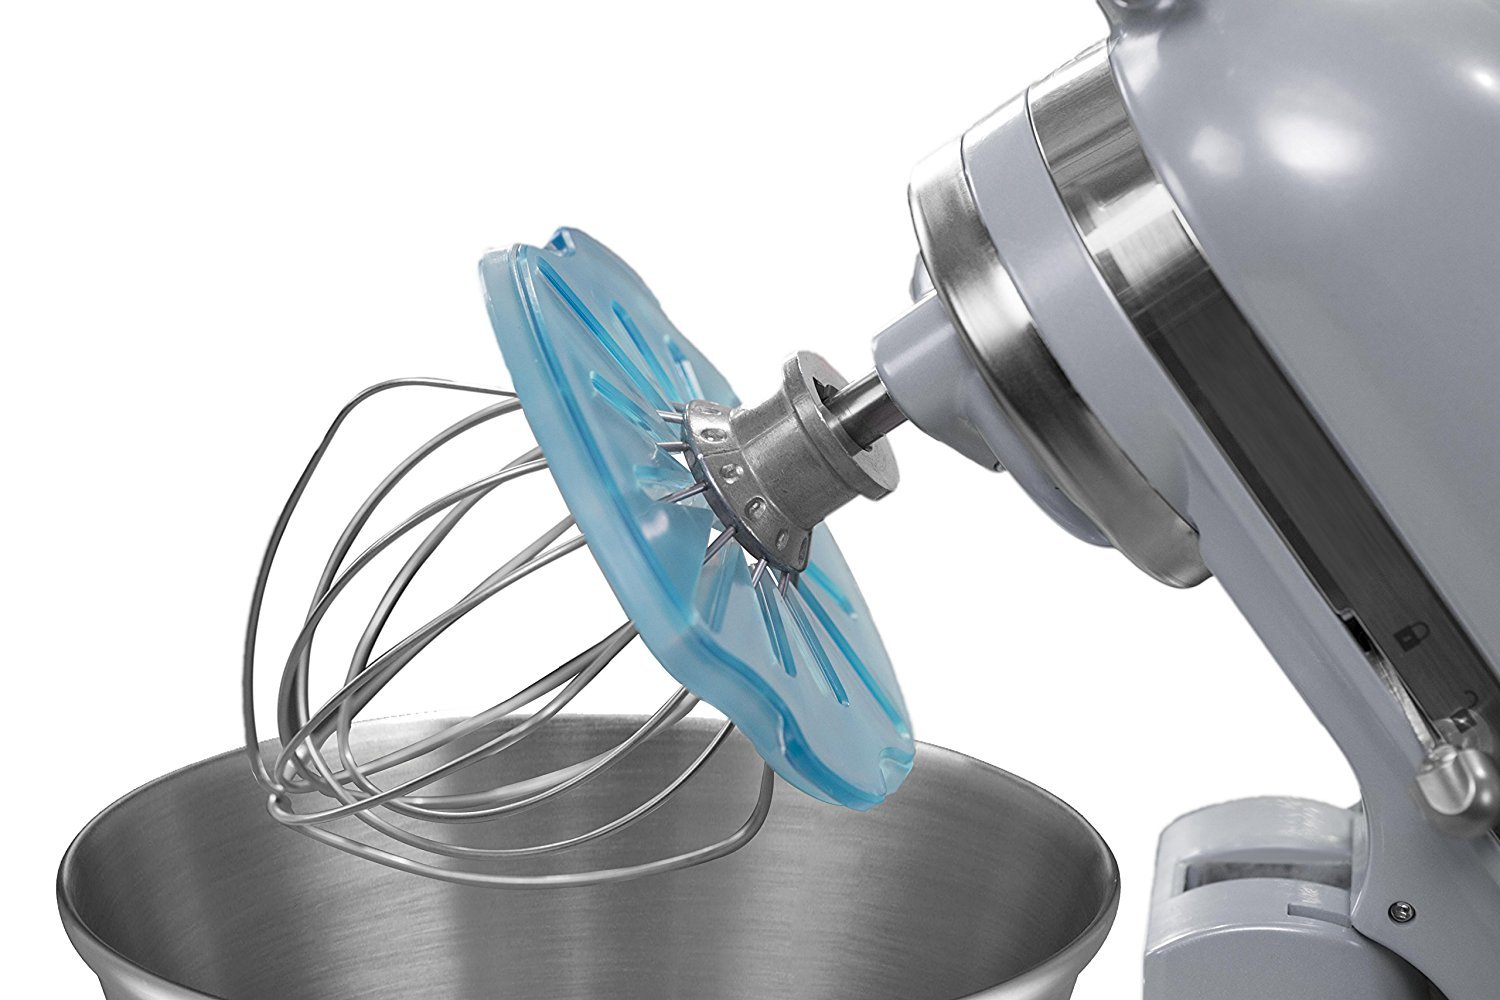 Whisk Wiper PRO for Stand Mixers - Mix Without The Mess - The Ultimate Stand Mixer Accessory - Compatible With KitchenAid Tilt-Head Stand Mixers - 4.5qt, 5qt (Color: Glass Blue)